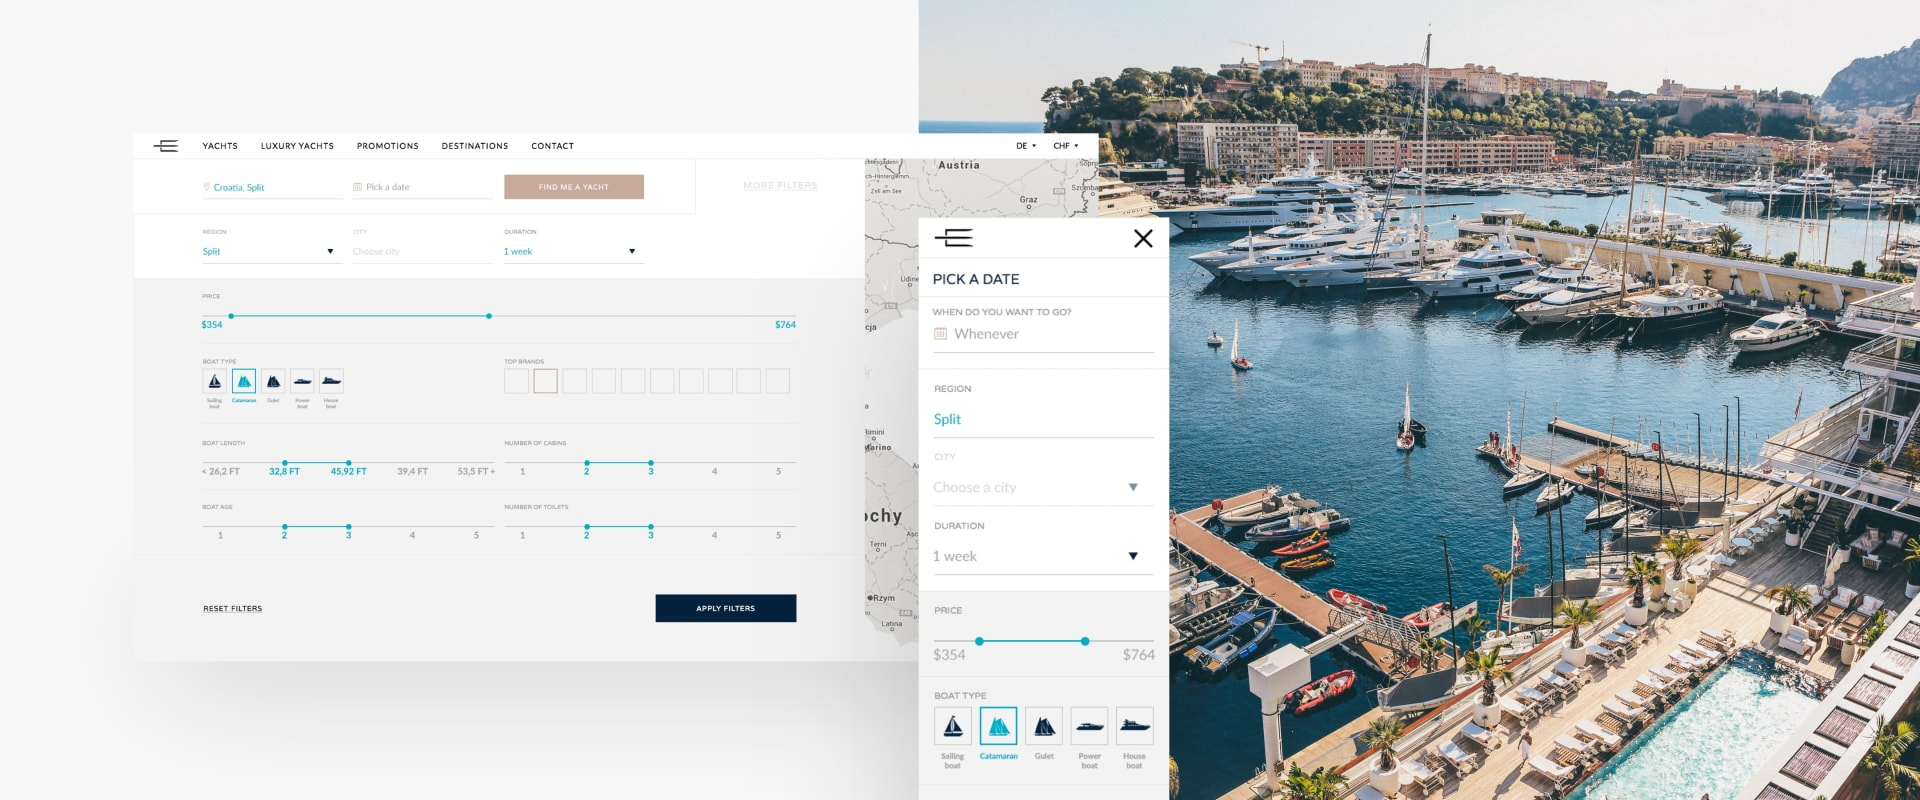 Eres Yachting Booking Platform Web Design